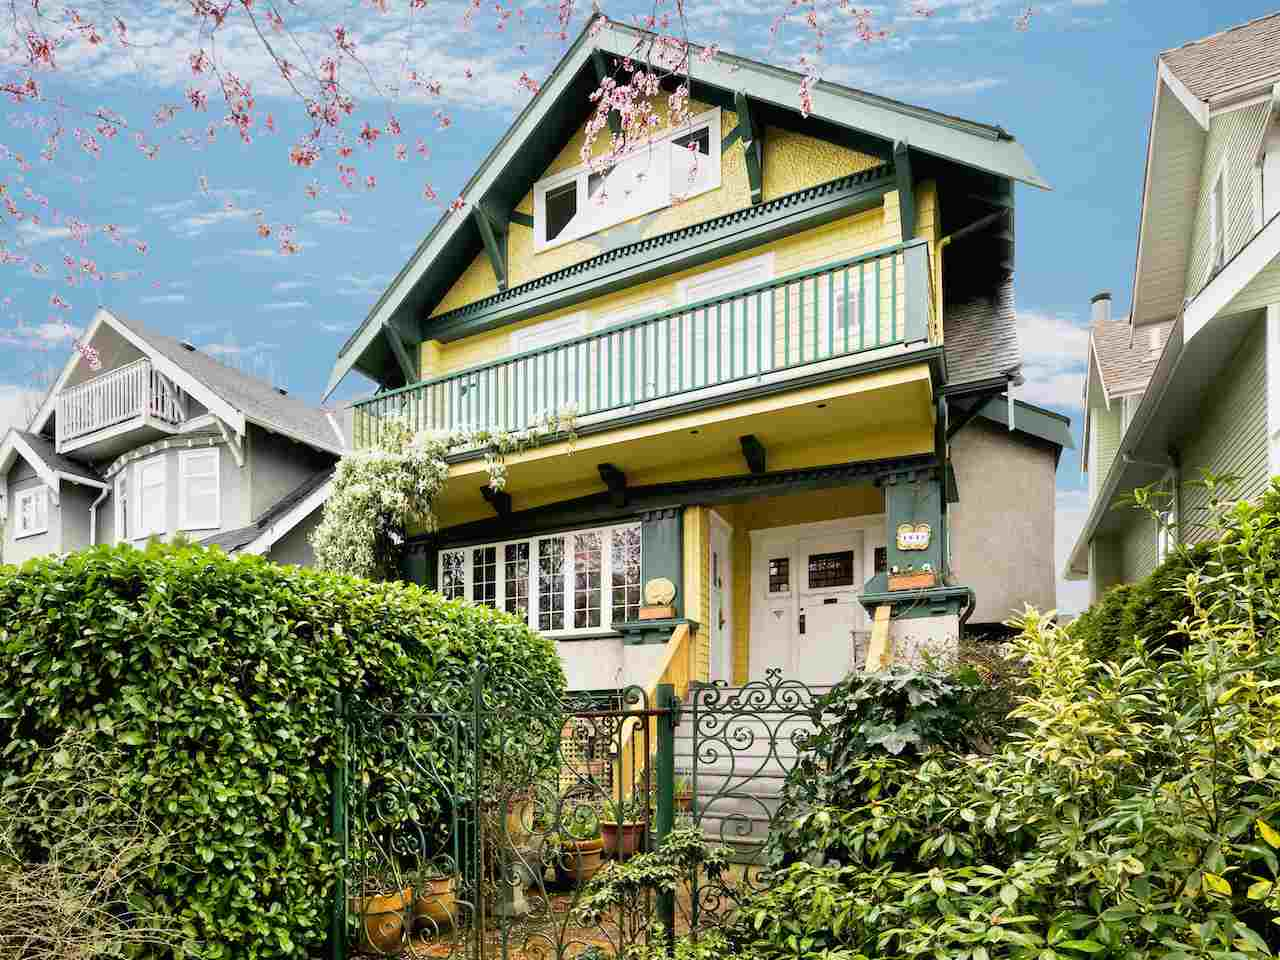 Main Photo: 1849 CREELMAN Avenue in Vancouver: Kitsilano House for sale (Vancouver West)  : MLS® # R2045415